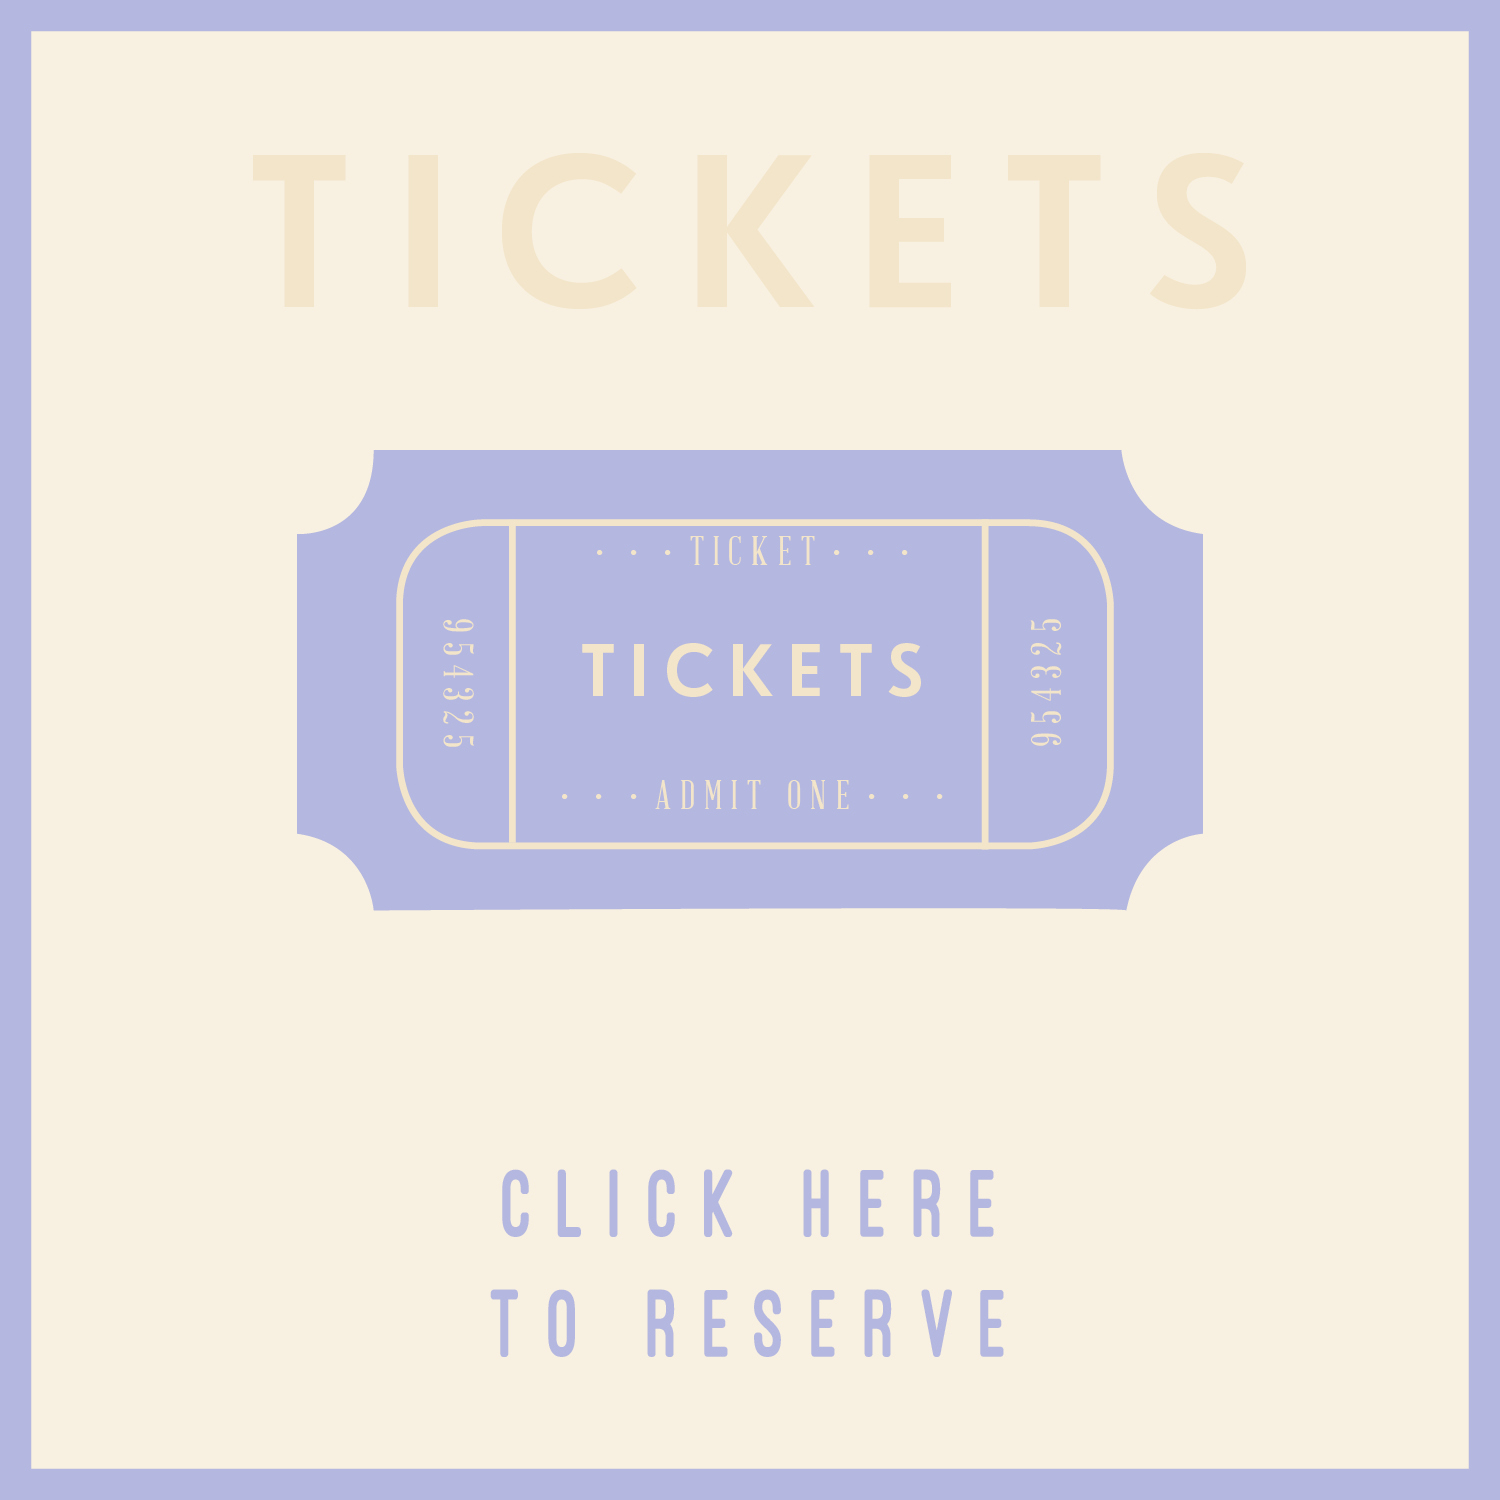 ticketsbadges.jpg